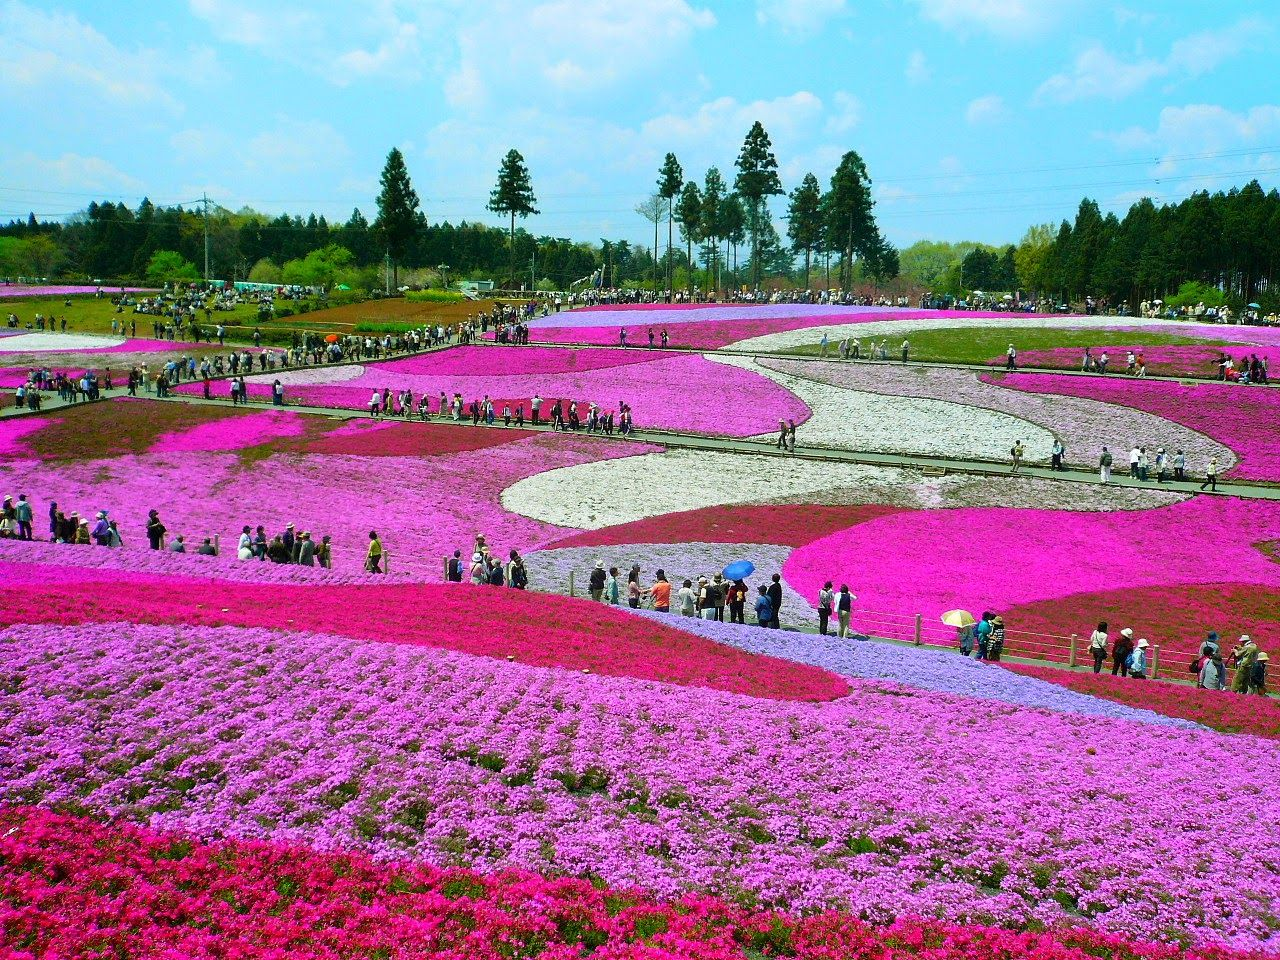 The most beautiful flower fields in the world